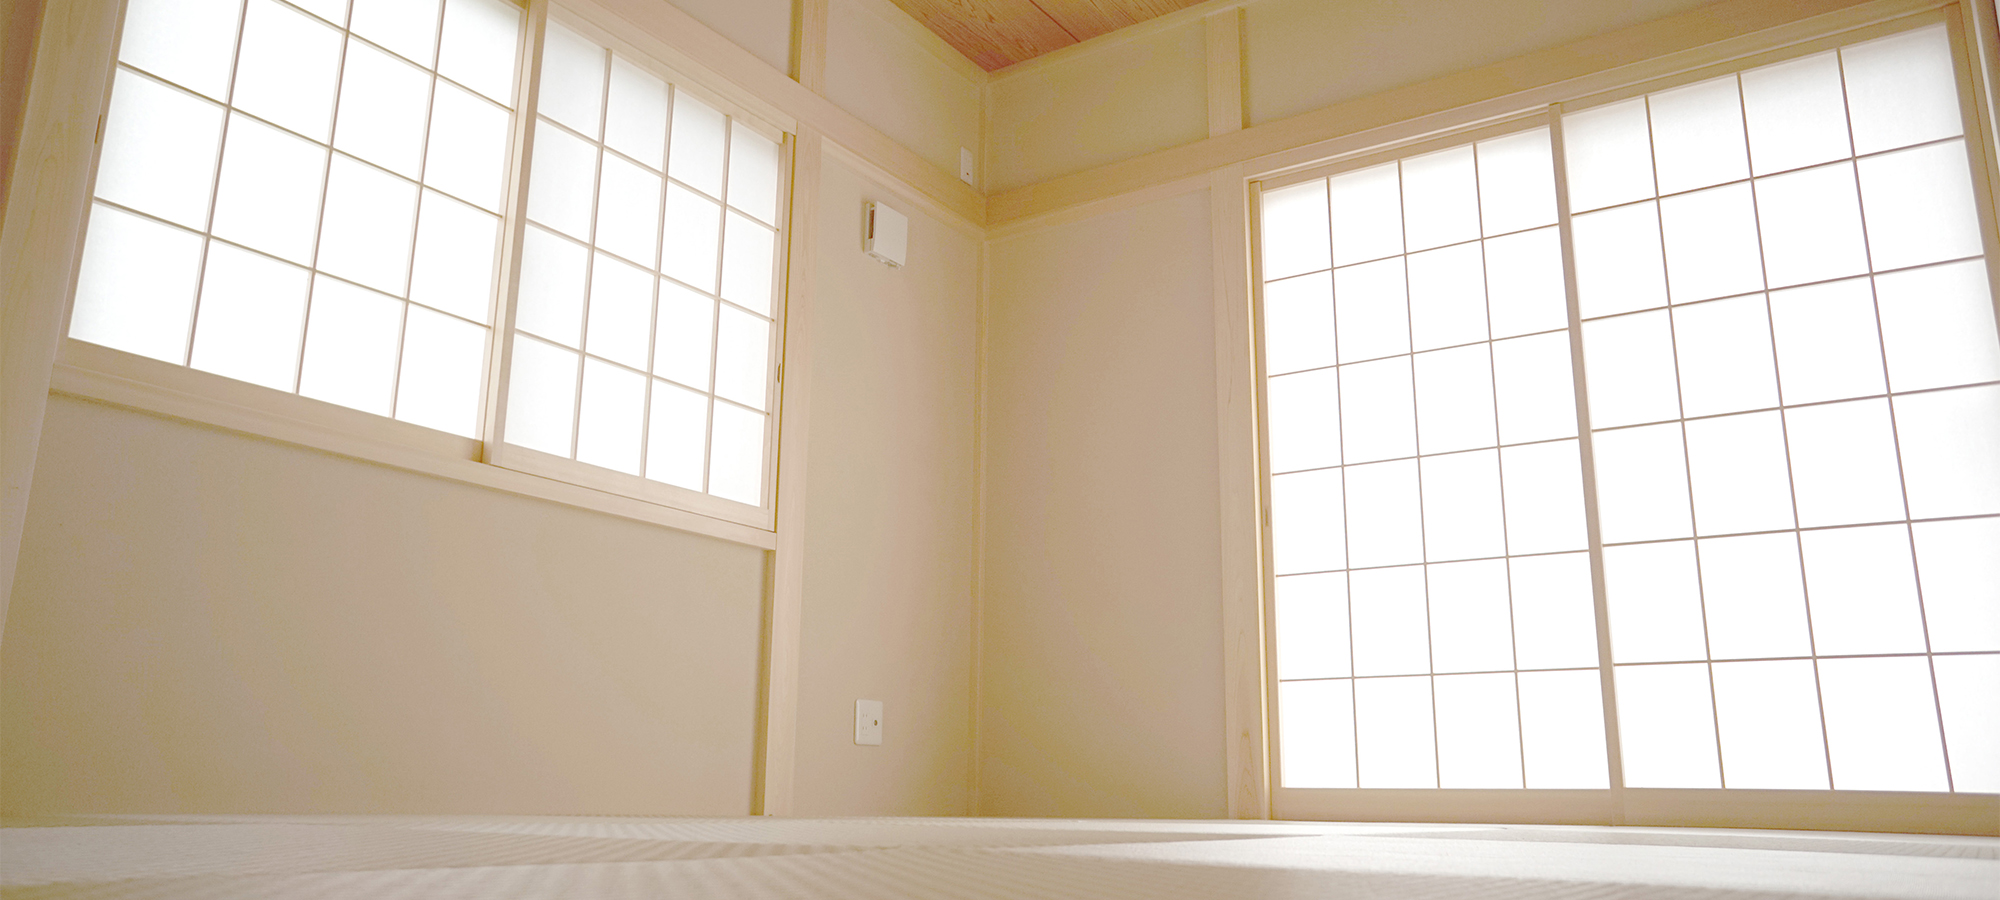 - JAPANESE-STYLE ROOM -